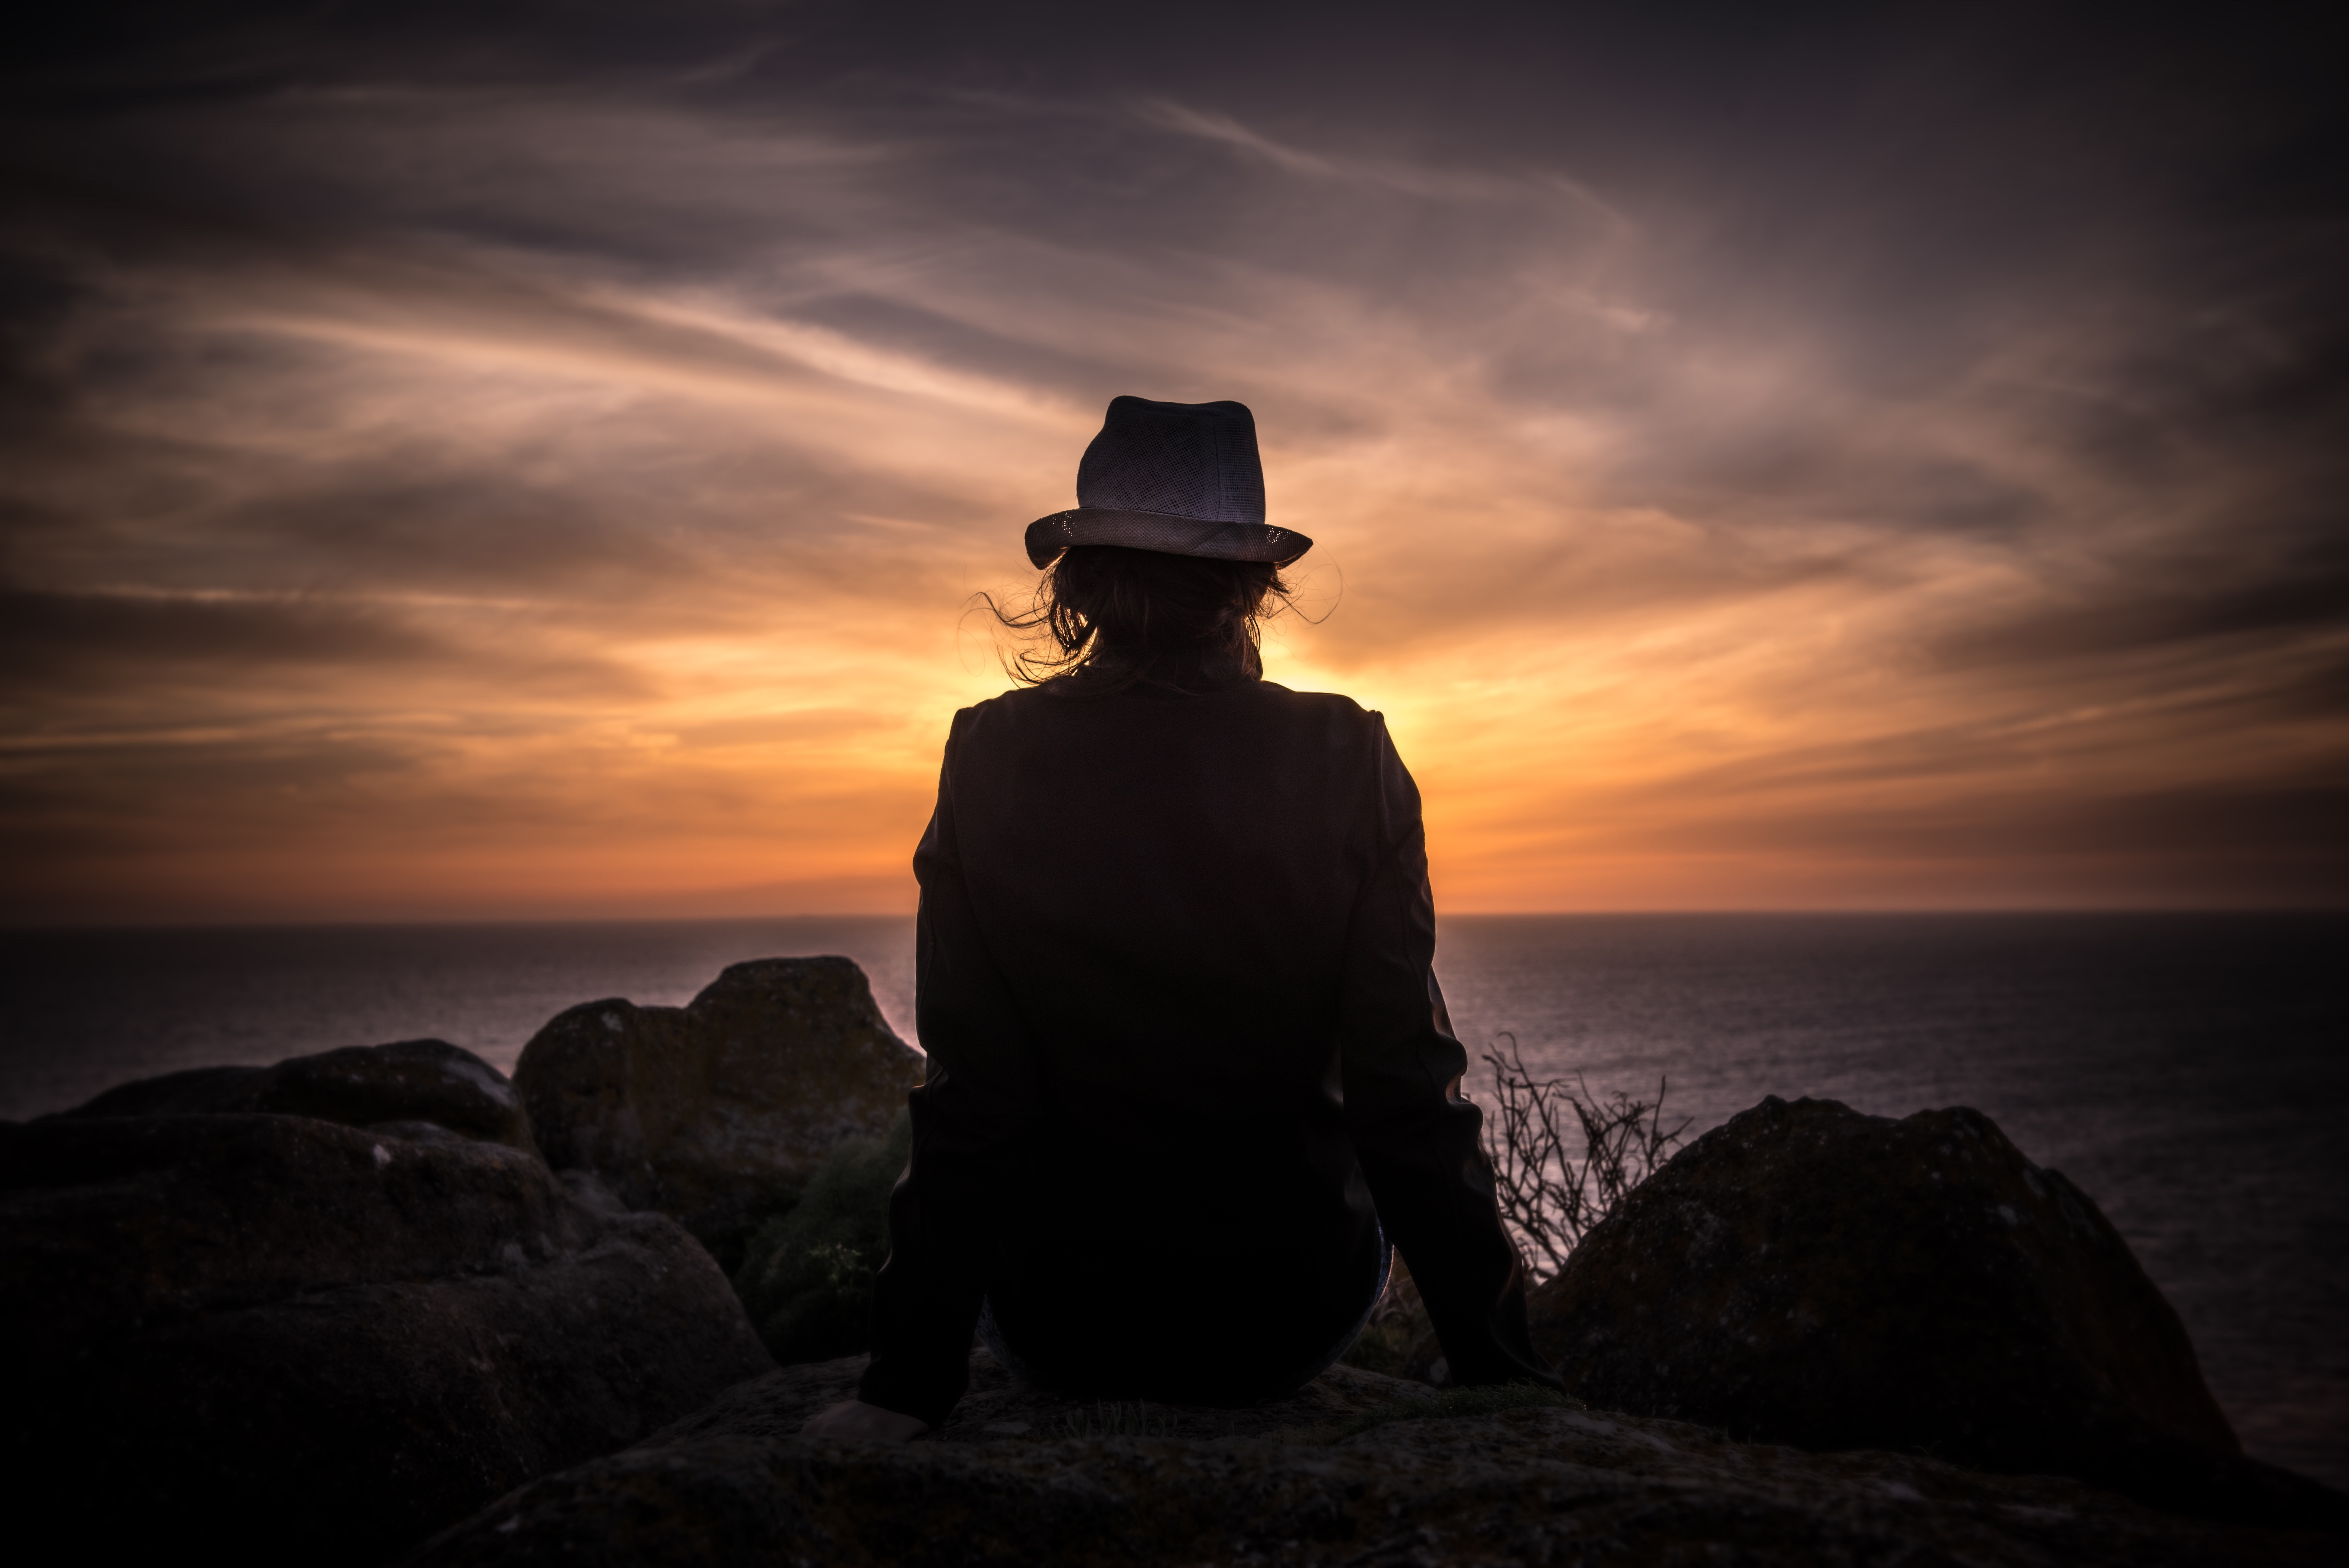 Significance of Self-Introspection